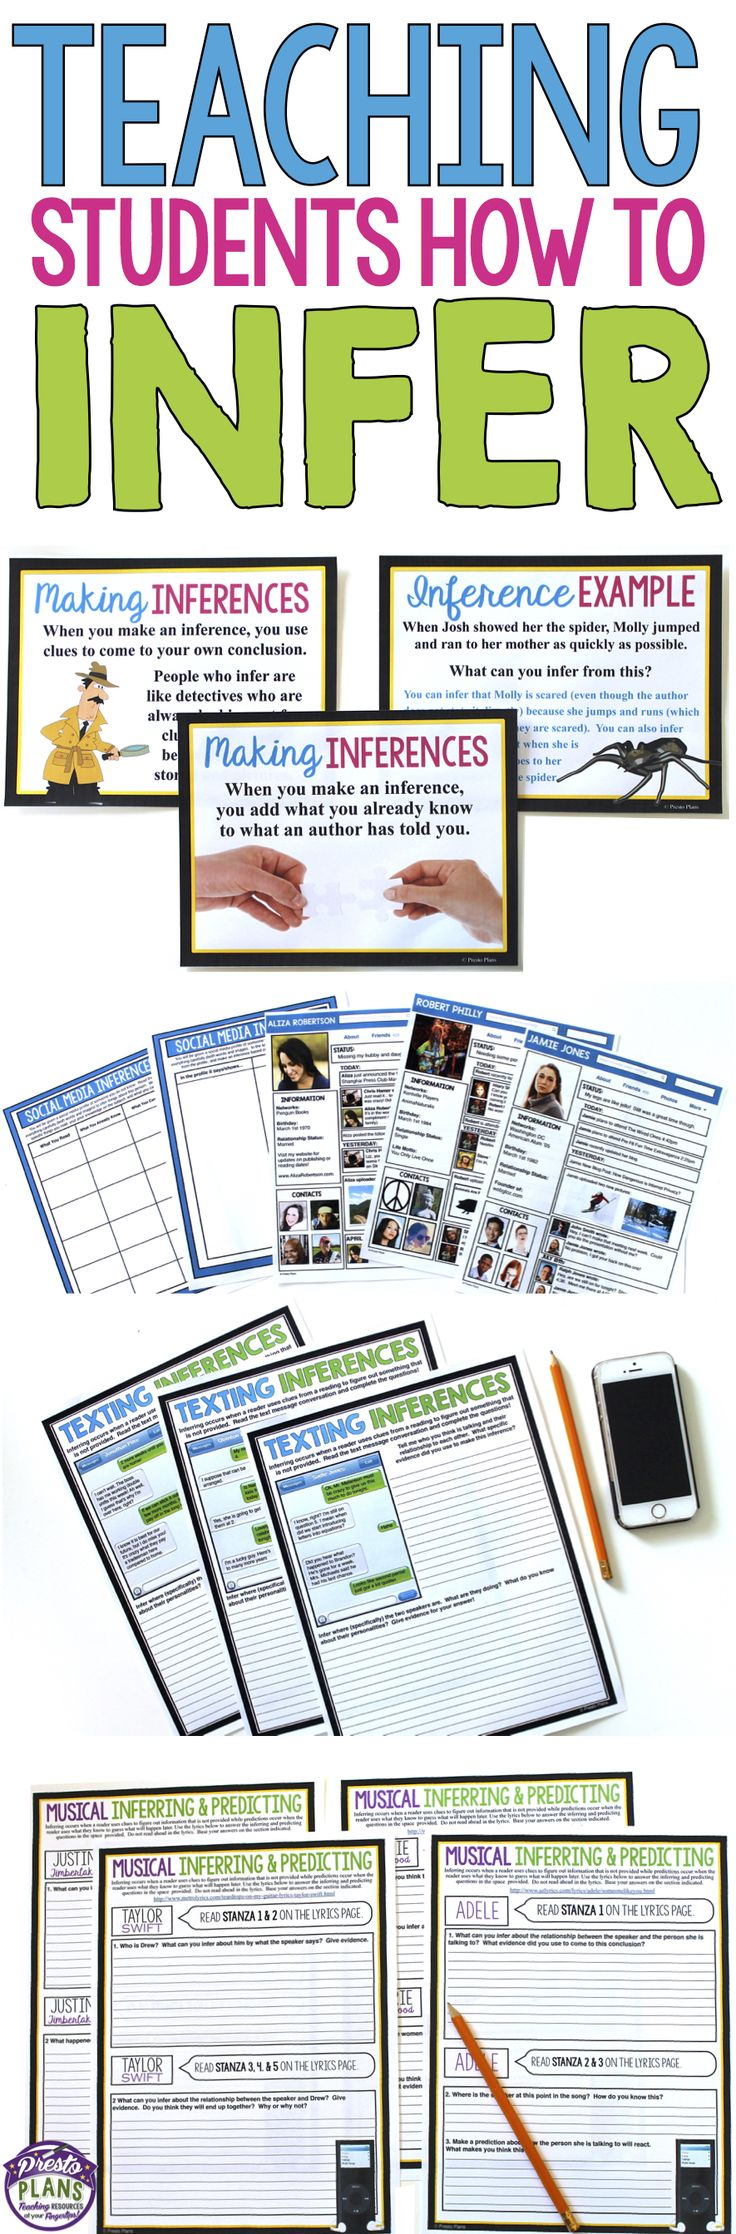 Workbooks inferencing worksheets grade 3 : Best 25+ Inference ideas on Pinterest | Inference activities ...